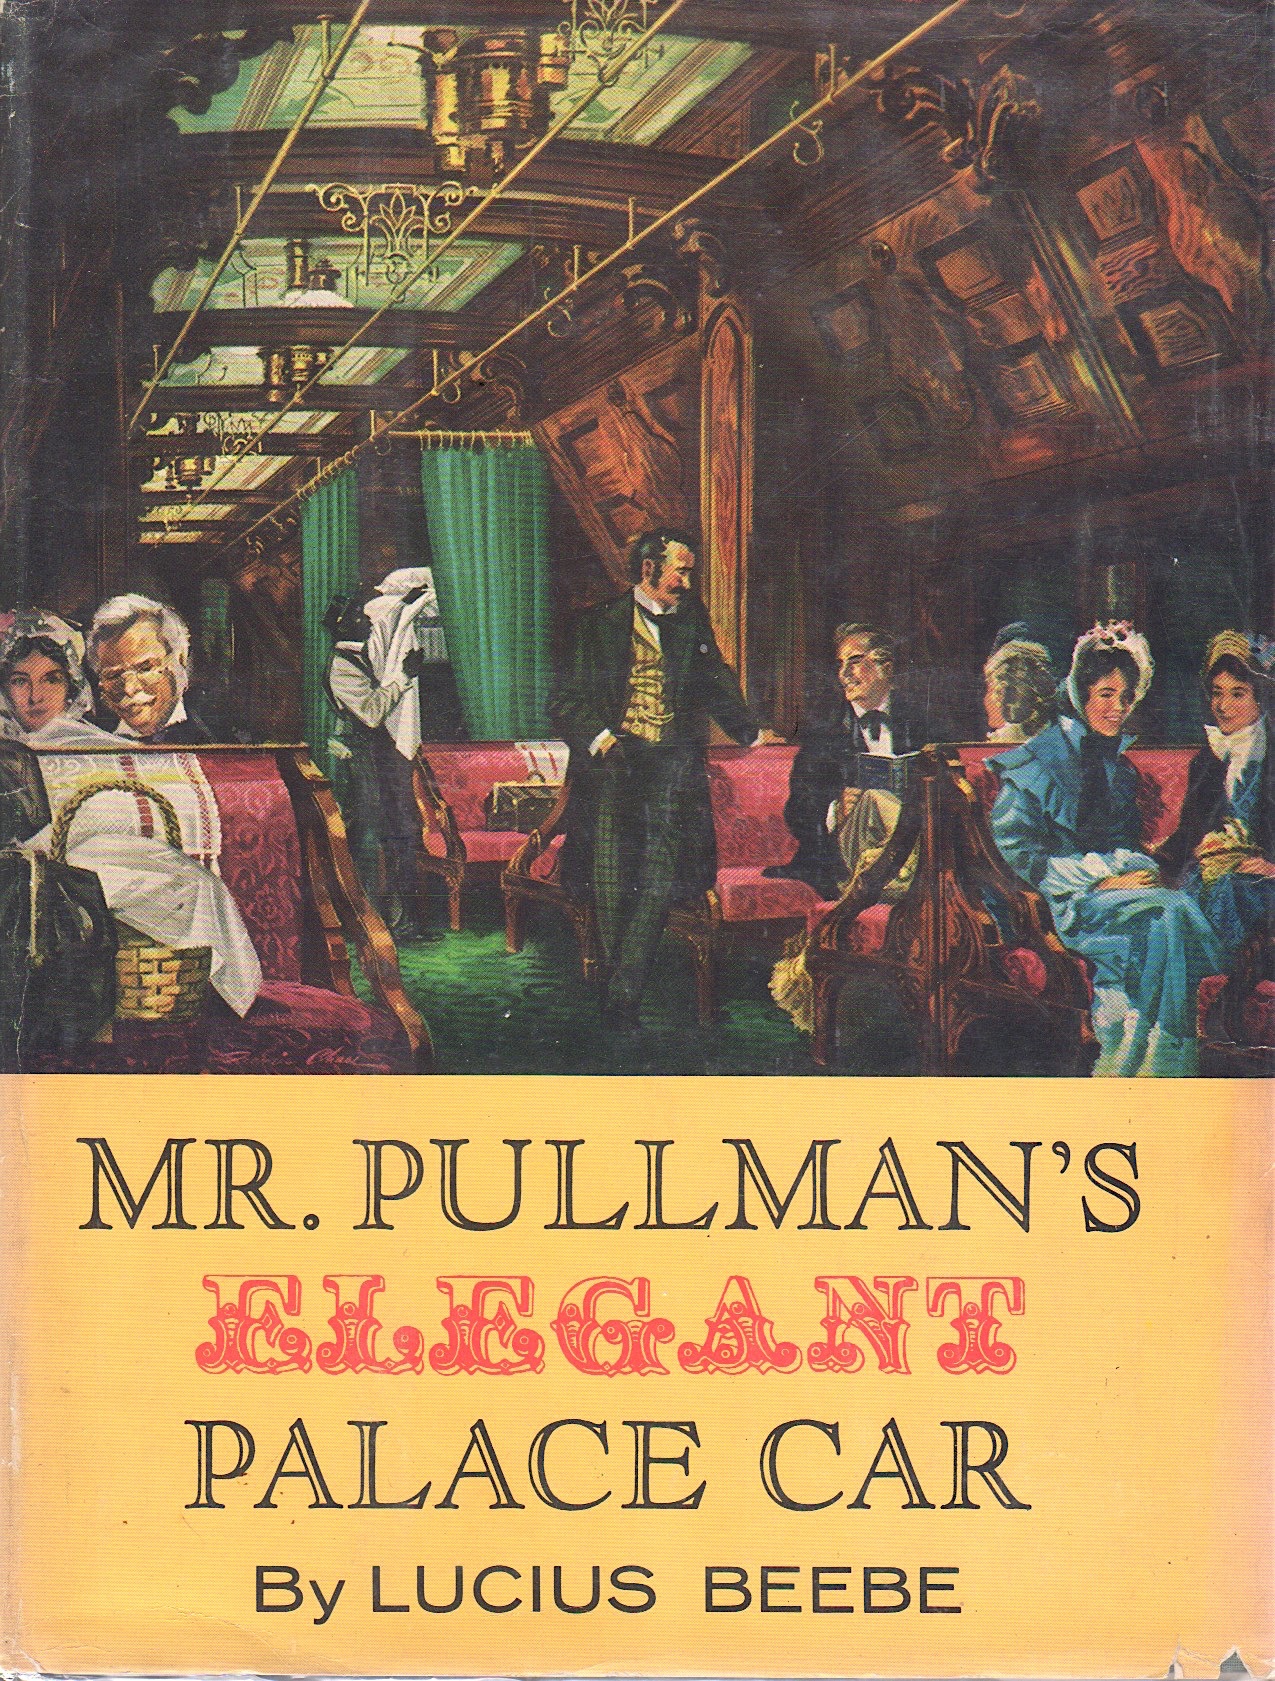 MR. PULLMAN'S ELEGANT PALACE CAR. The Railway Carriage that Established a new Dimension of Luxury and Entered the National Lexicon as a Symbol of Splendor. Lucius Beebe.